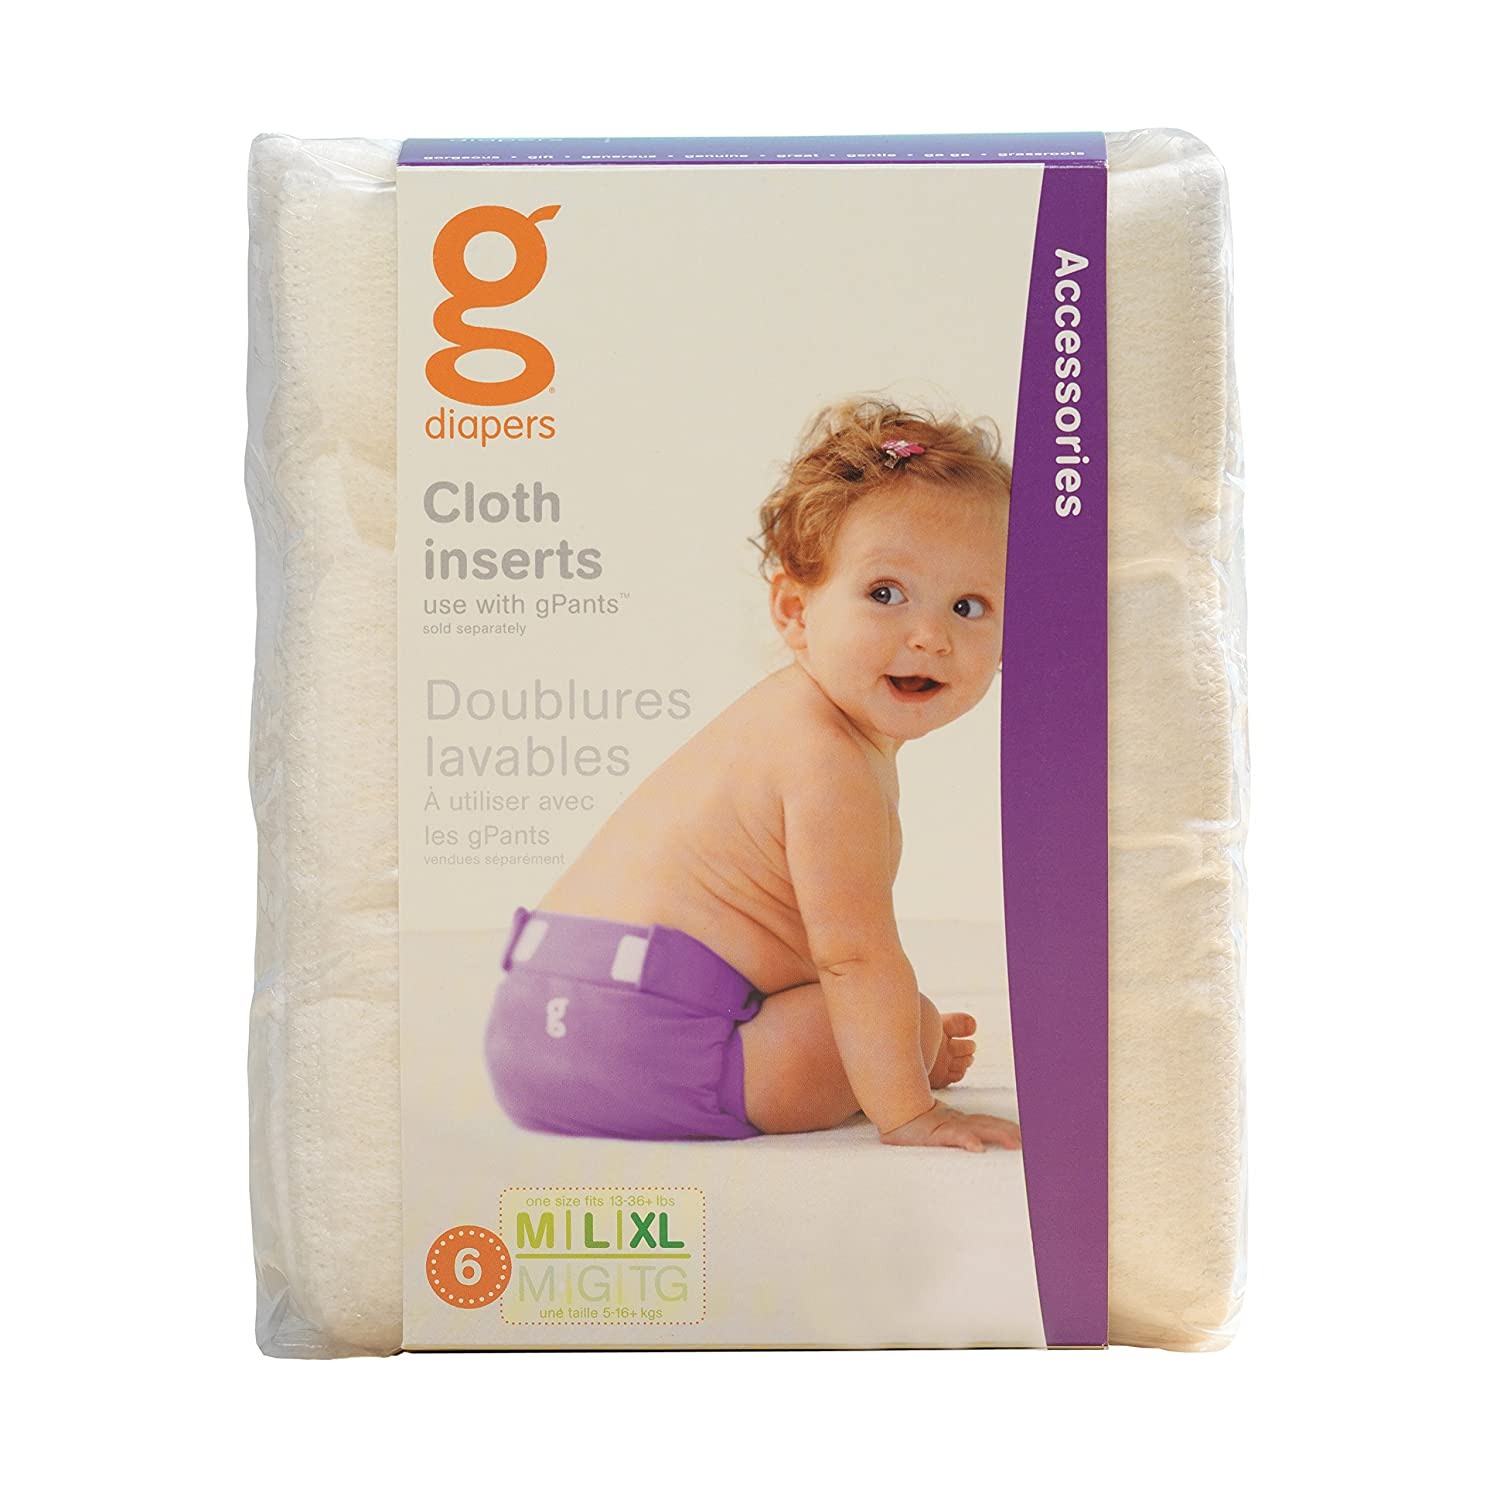 gDiapers Cloth Inserts, Medium/Large/X-Large (6 Count) 62021